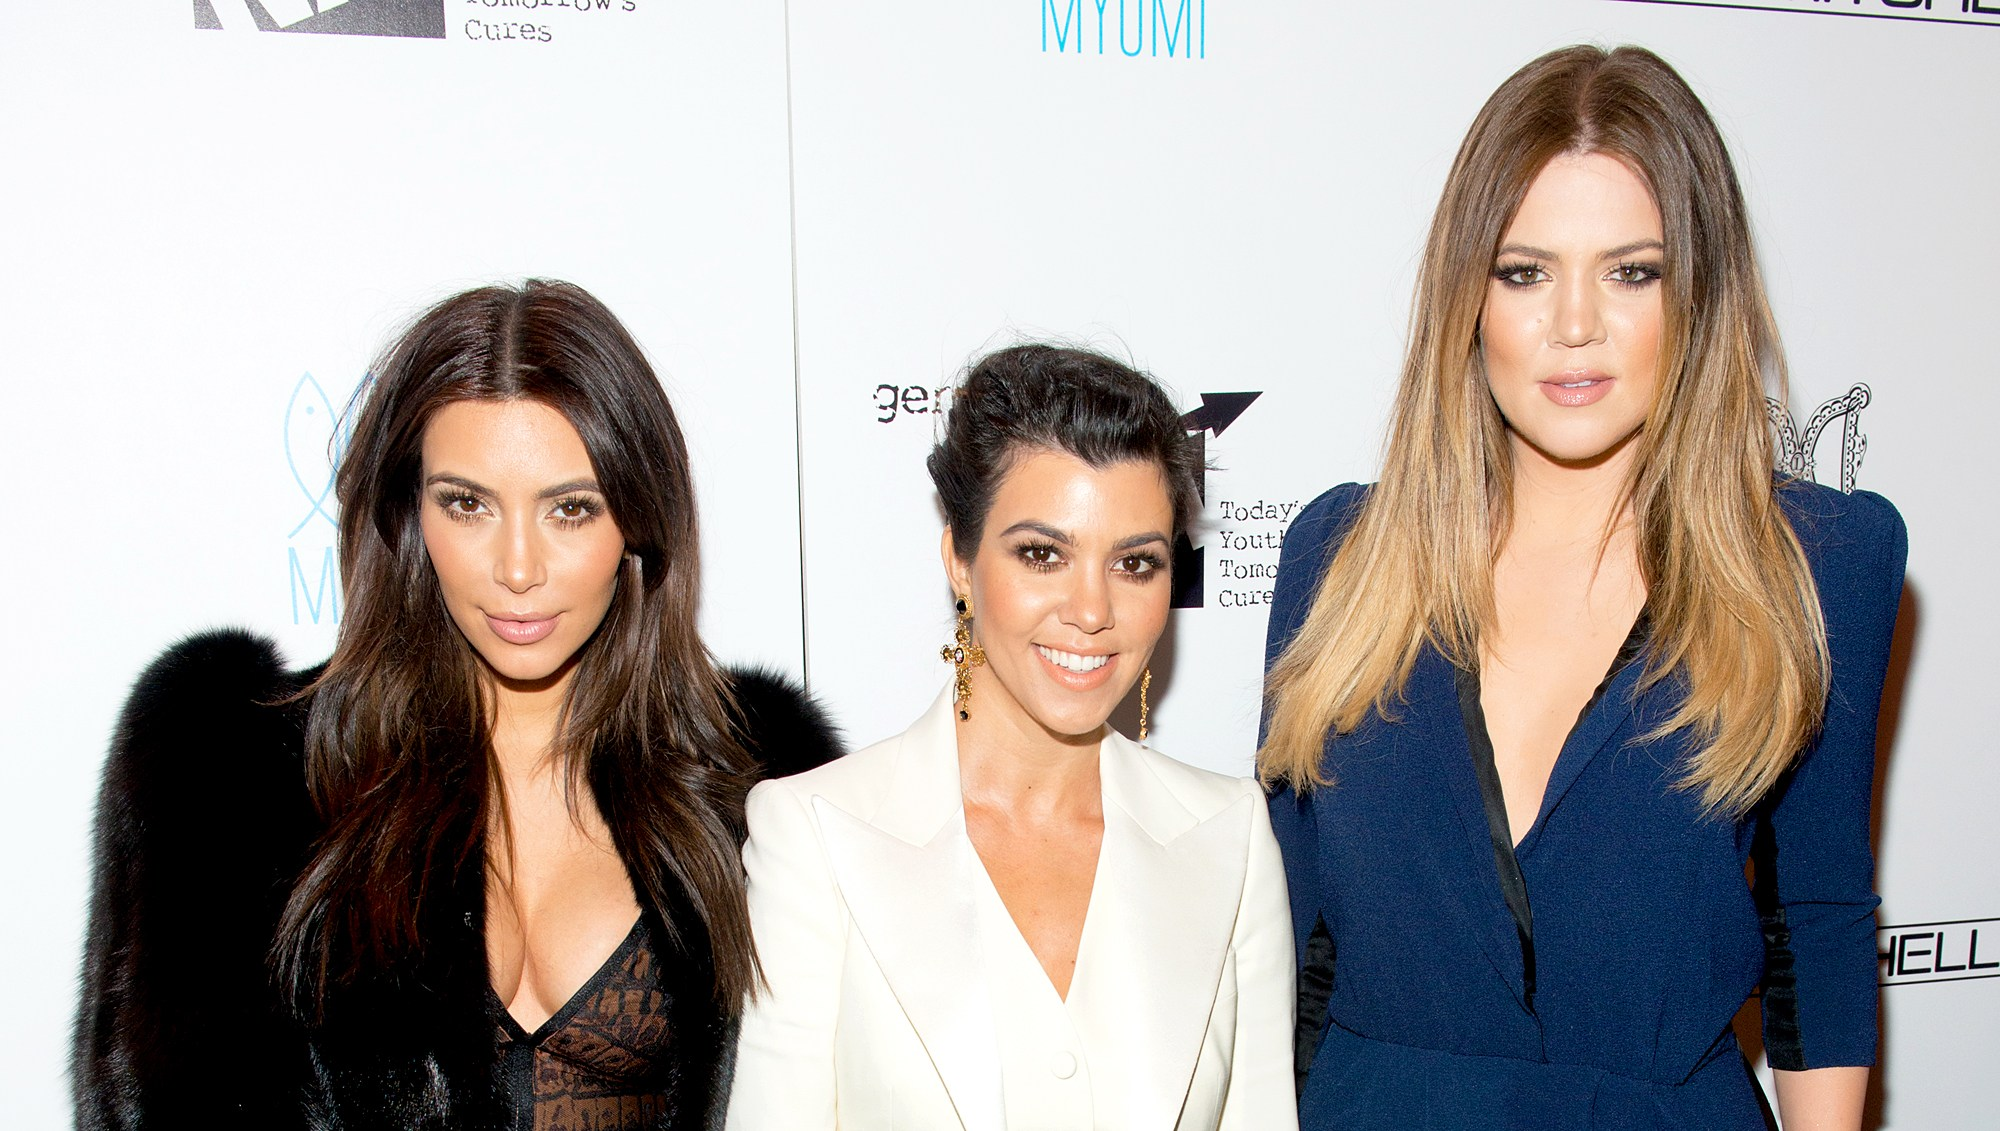 Kim Kardashian, Kourtney Kardashian and Khloe Kardashian attend the Generation NXT Charity Benefit at 1OAK on February 16, 2014 in New York City.